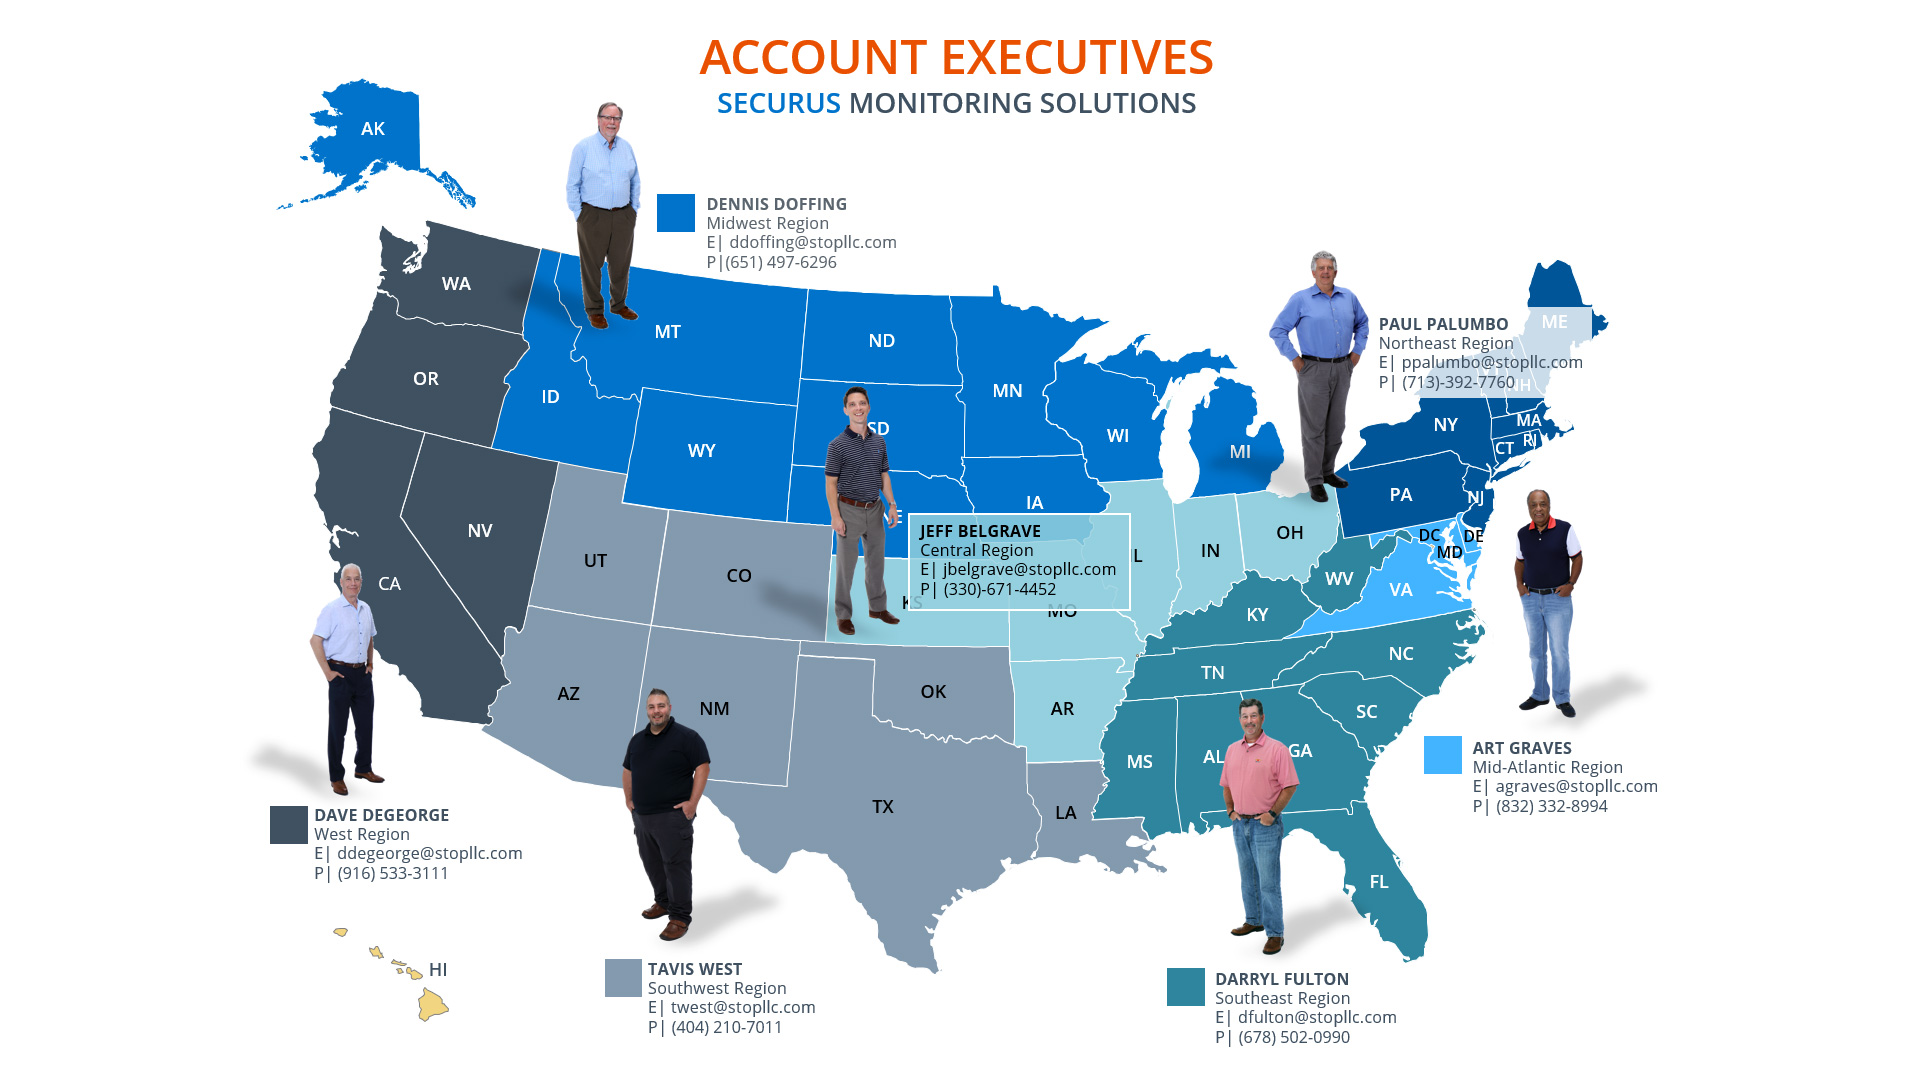 Nationwide Account Executives